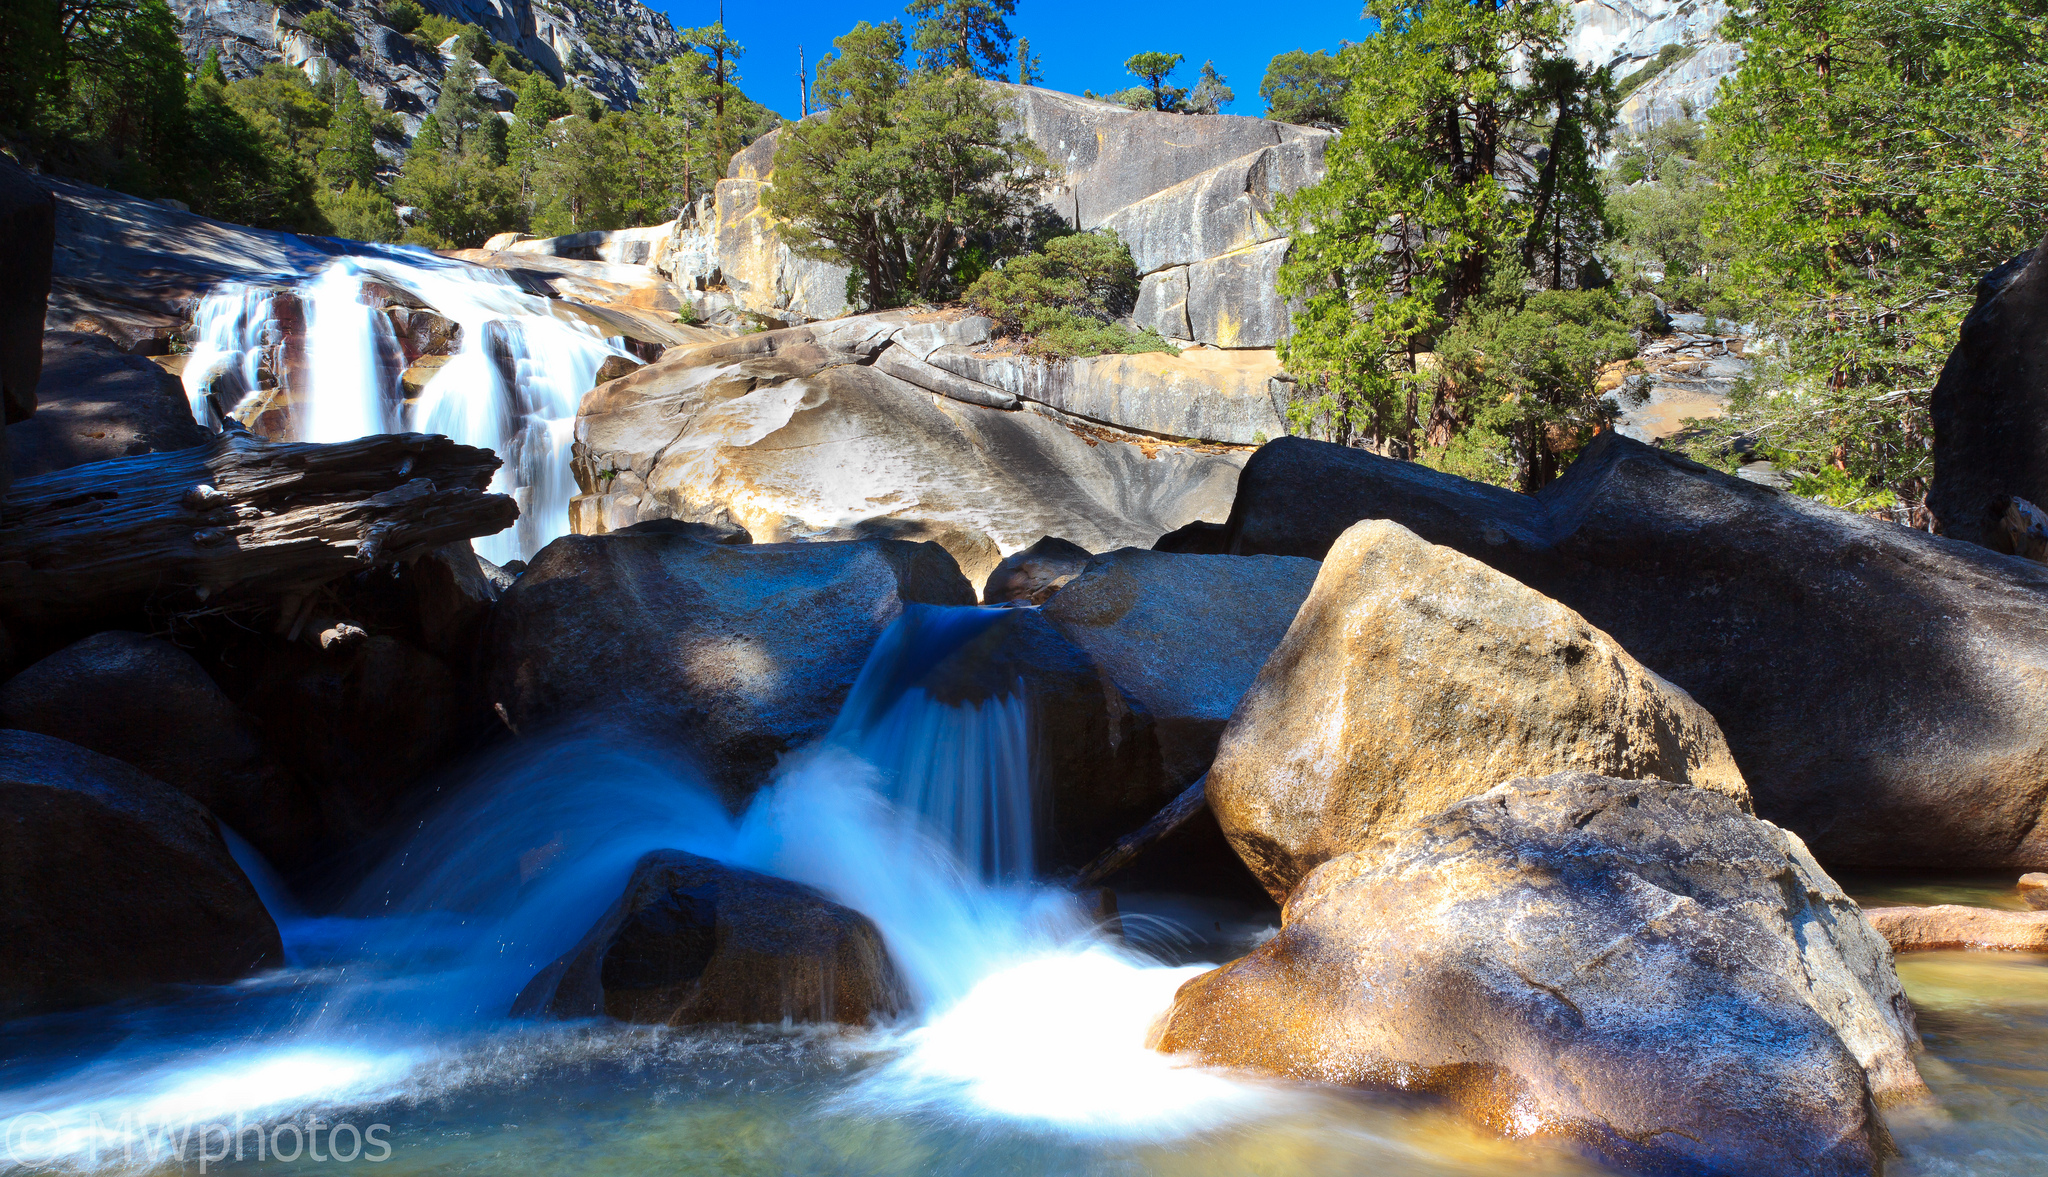 Kings Canyon National Park National Park in California Thousand